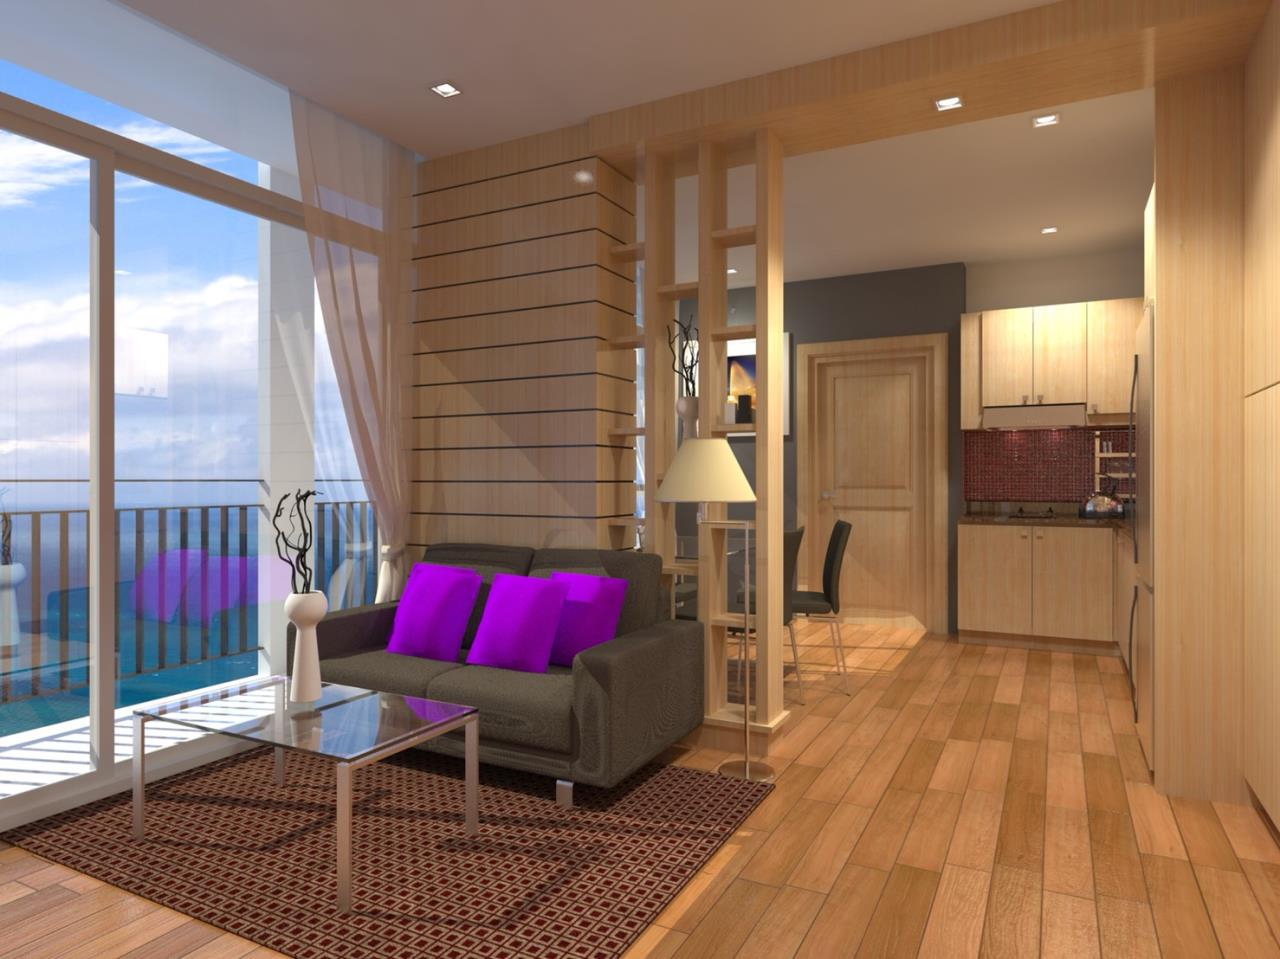 Signature Realty ( Thailand ) Co Ltd Agency's Furnished 2bedroom 65.75 sq.m condo with jacuzzi floor 2-11 at The Grand Jomtein Beach Pattaya 31